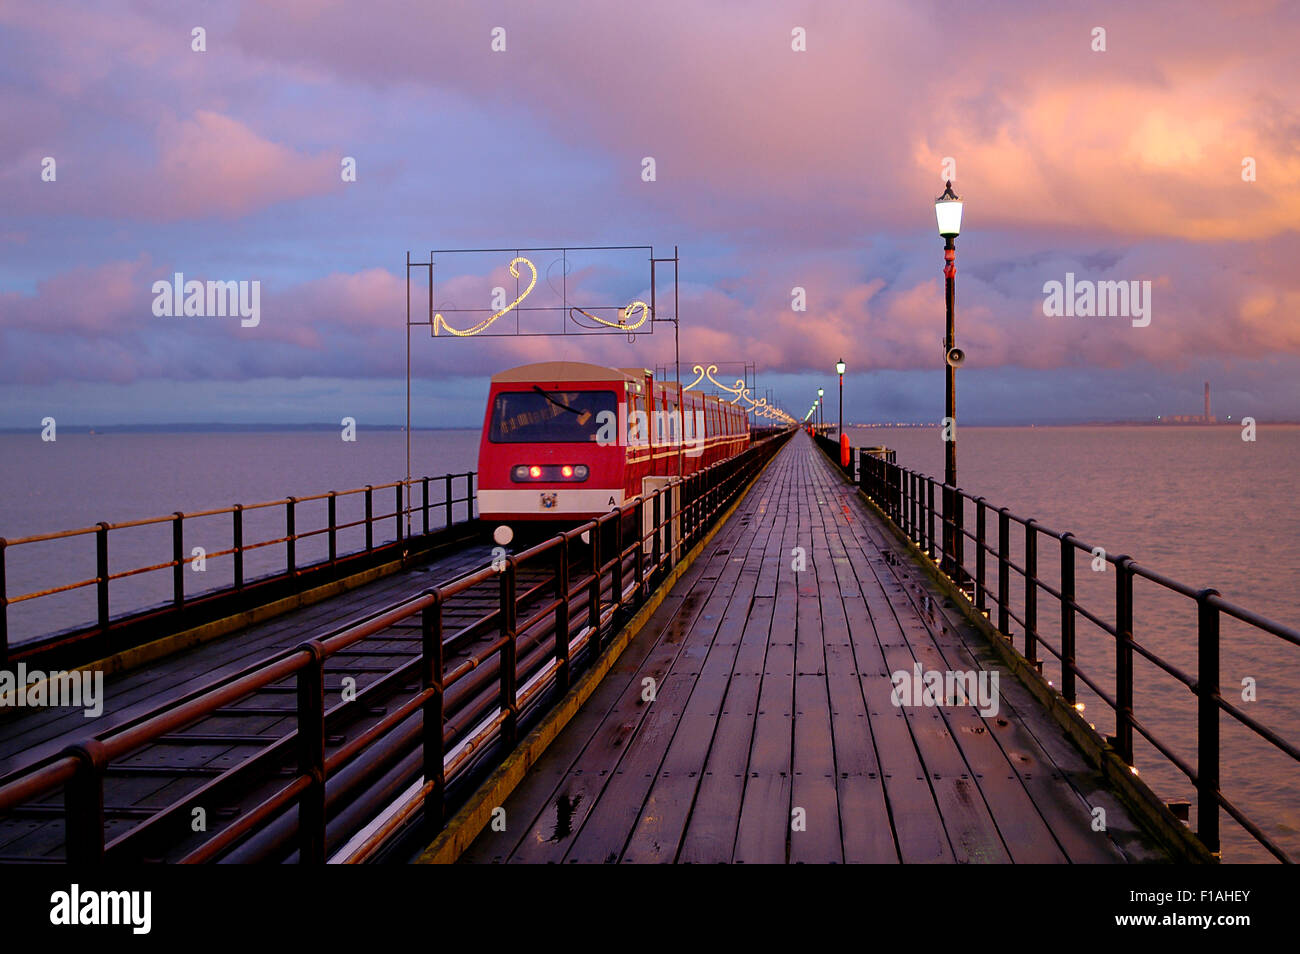 Southend pier and railway. Essex. England. UK - Stock Image